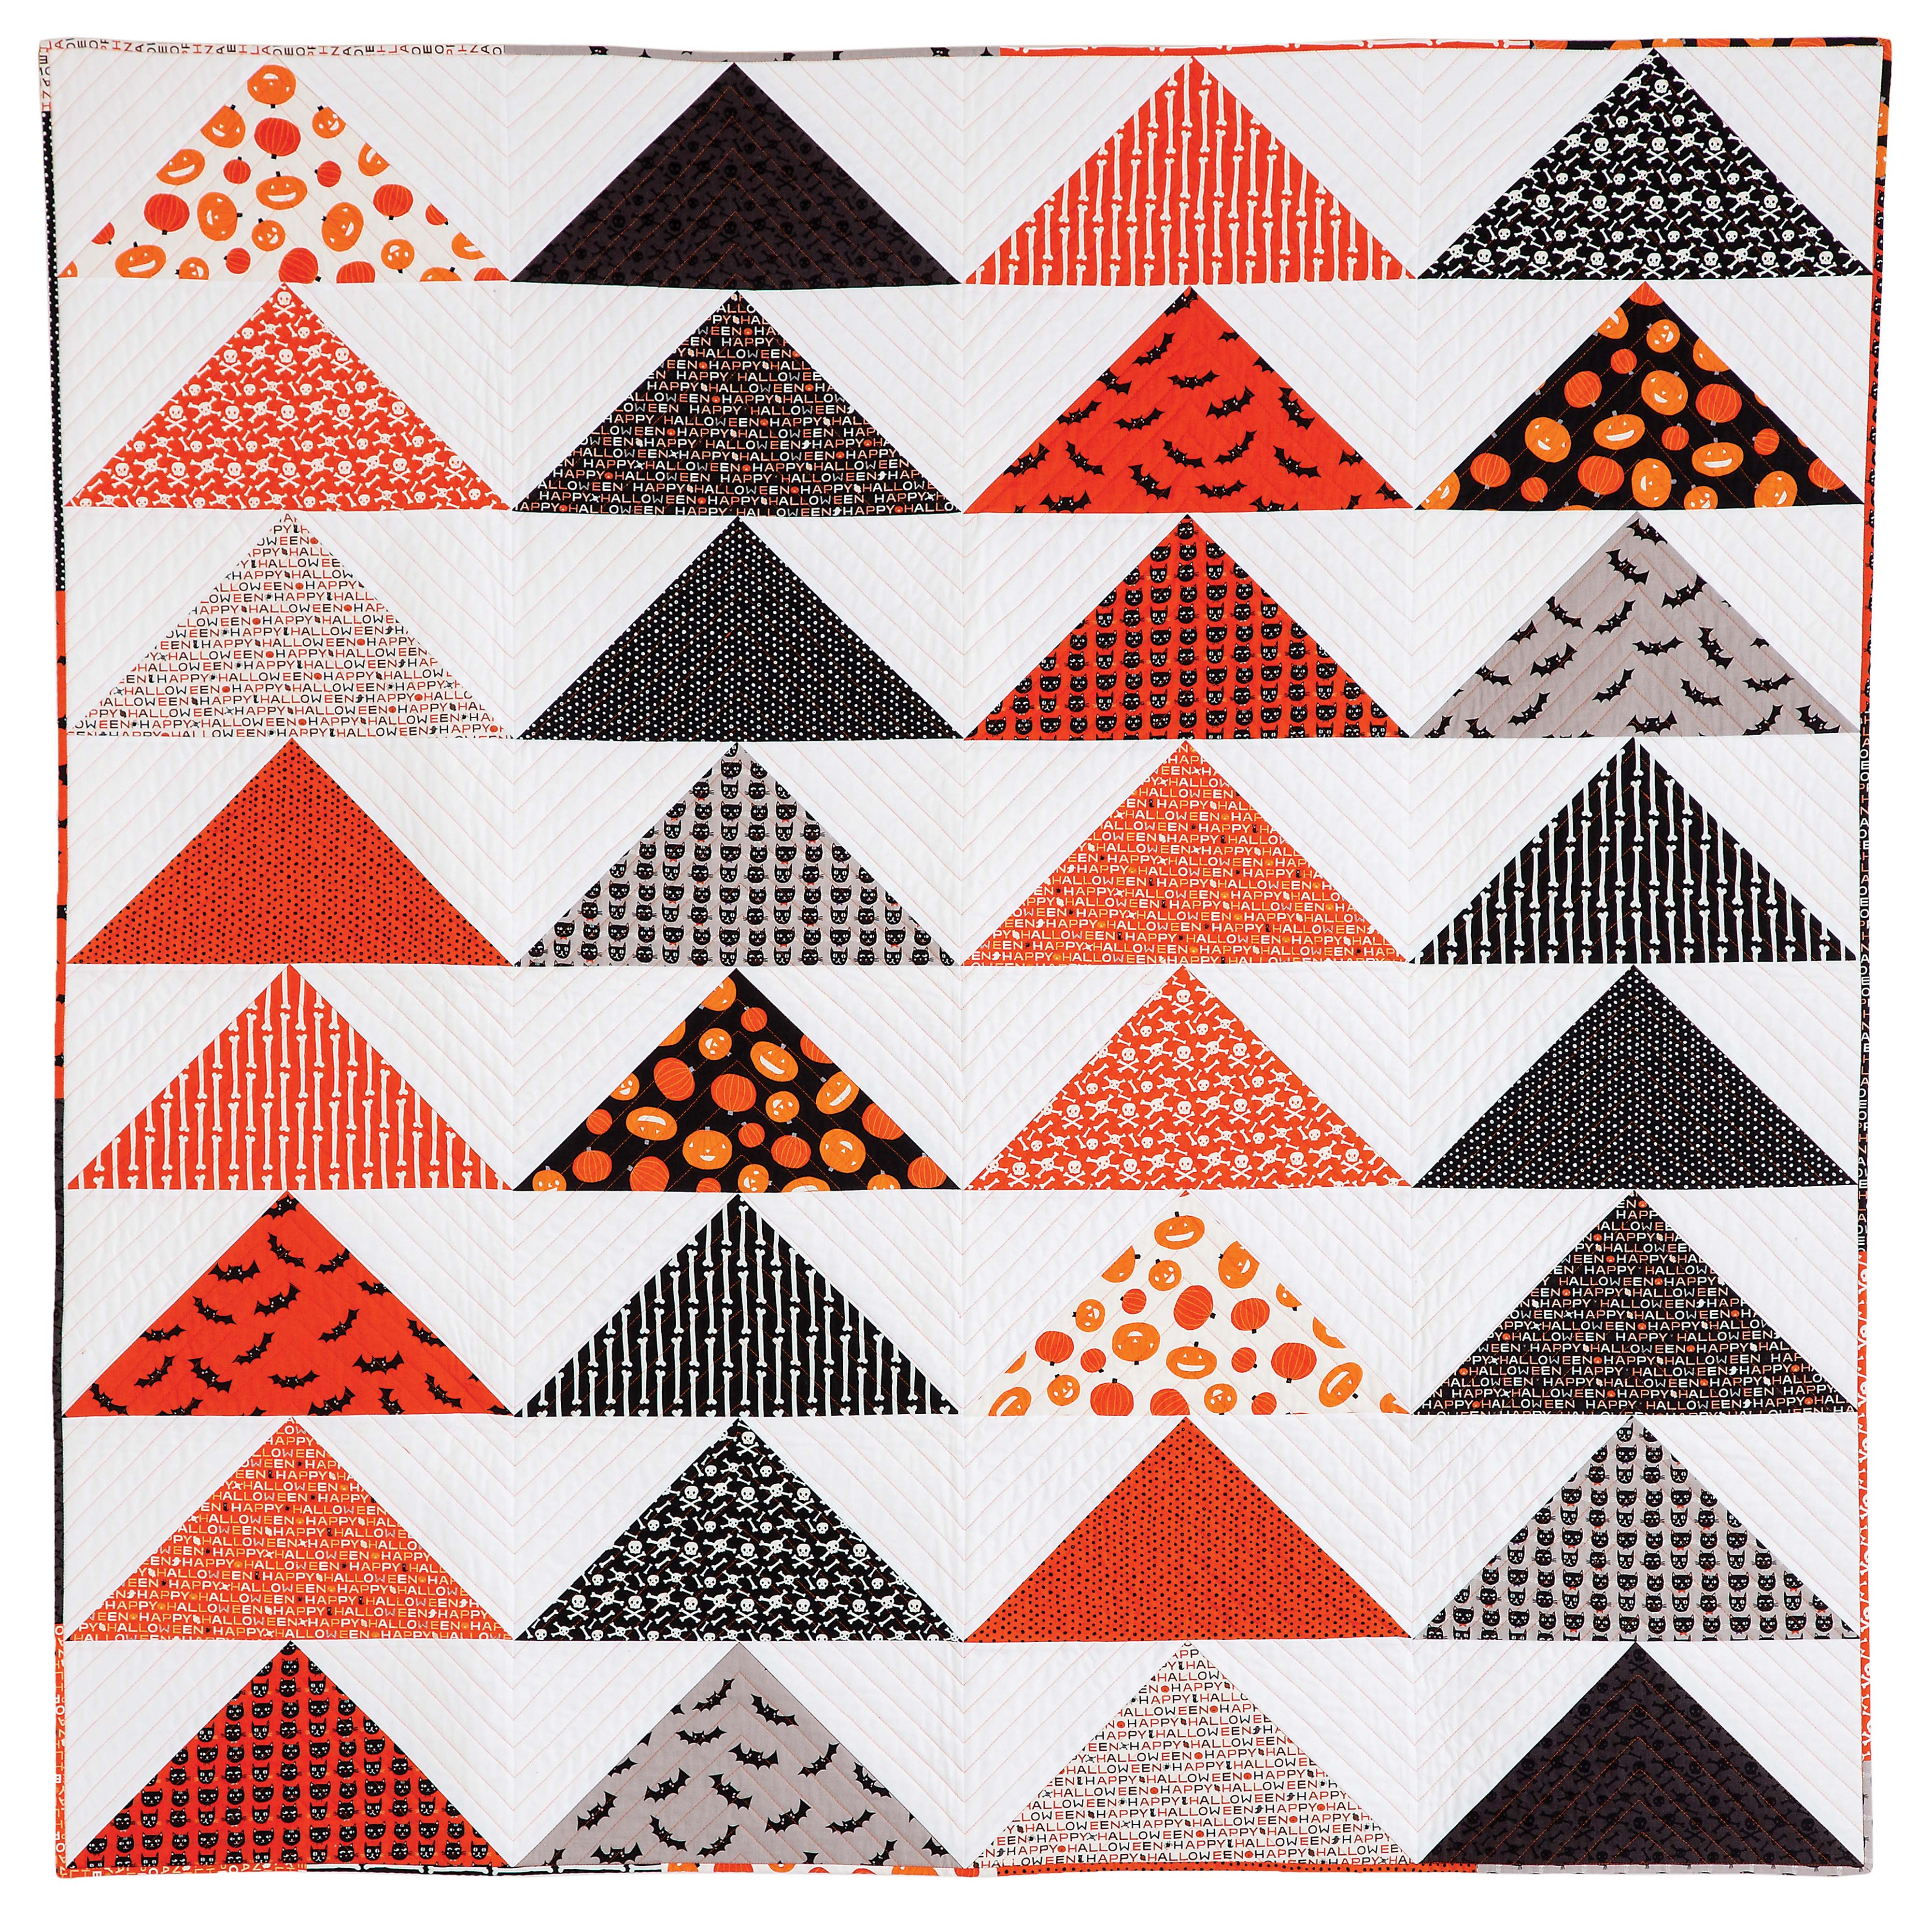 quilt-spooked-geese-flat